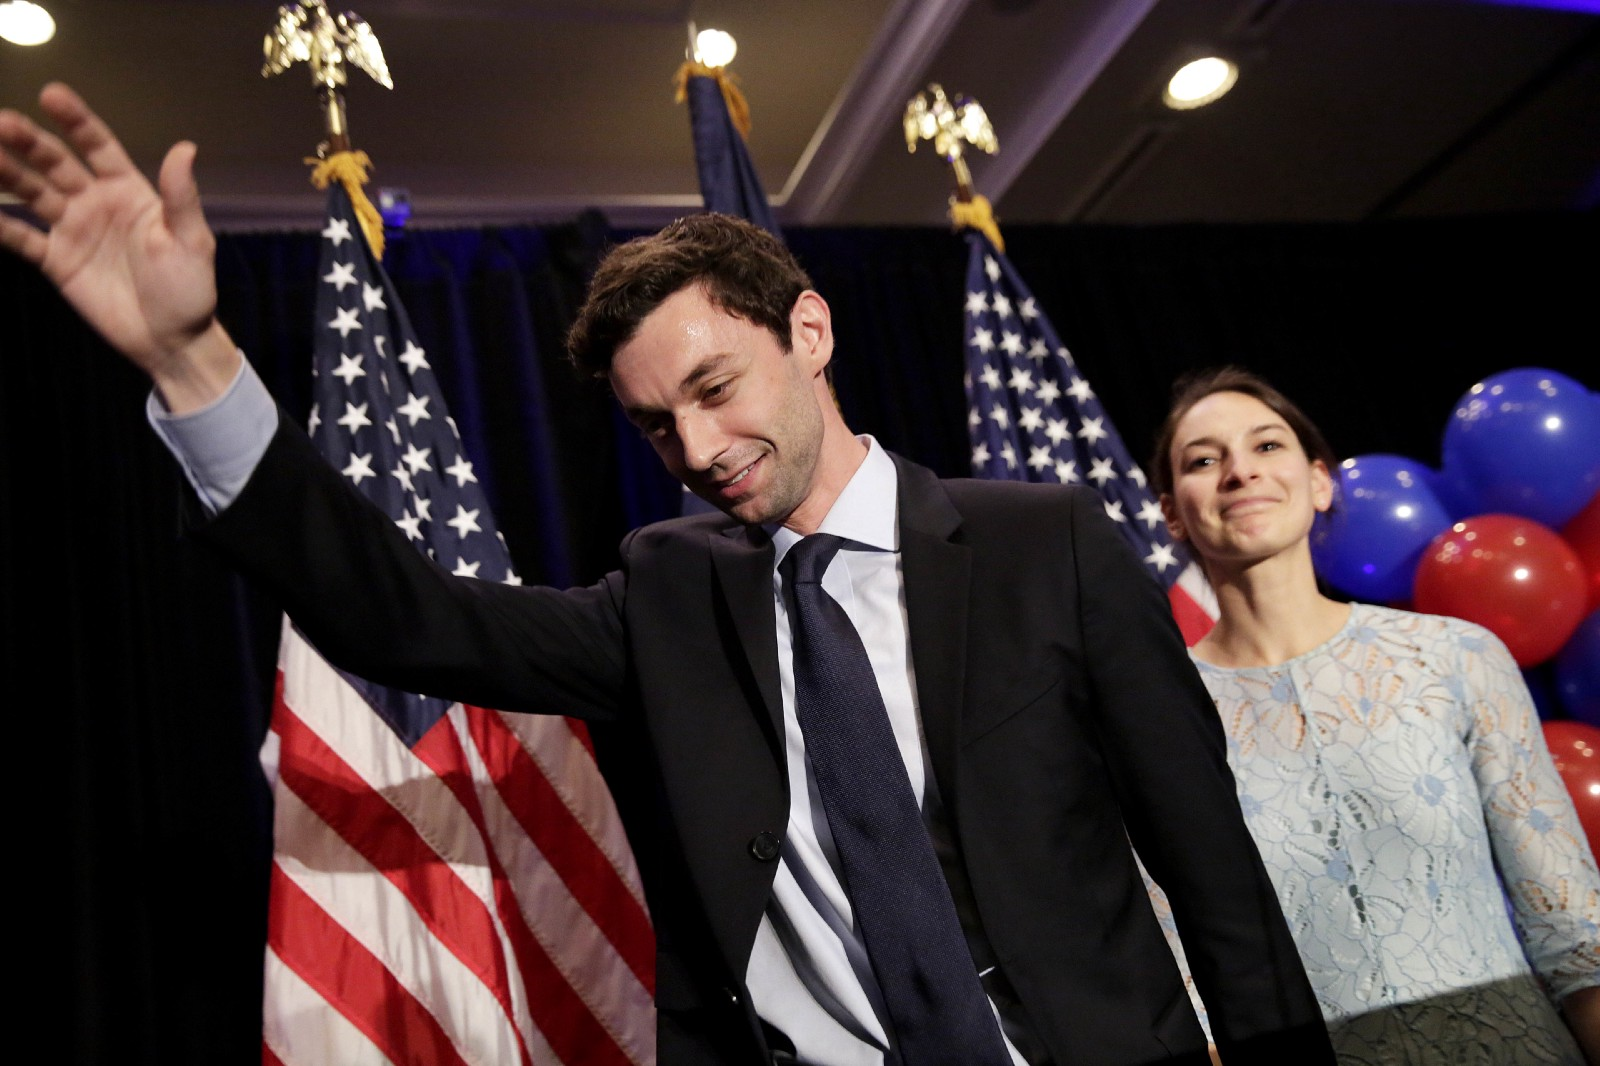 Jewish Democrat Jon Ossoff defeated in crucial Georgia congressional race